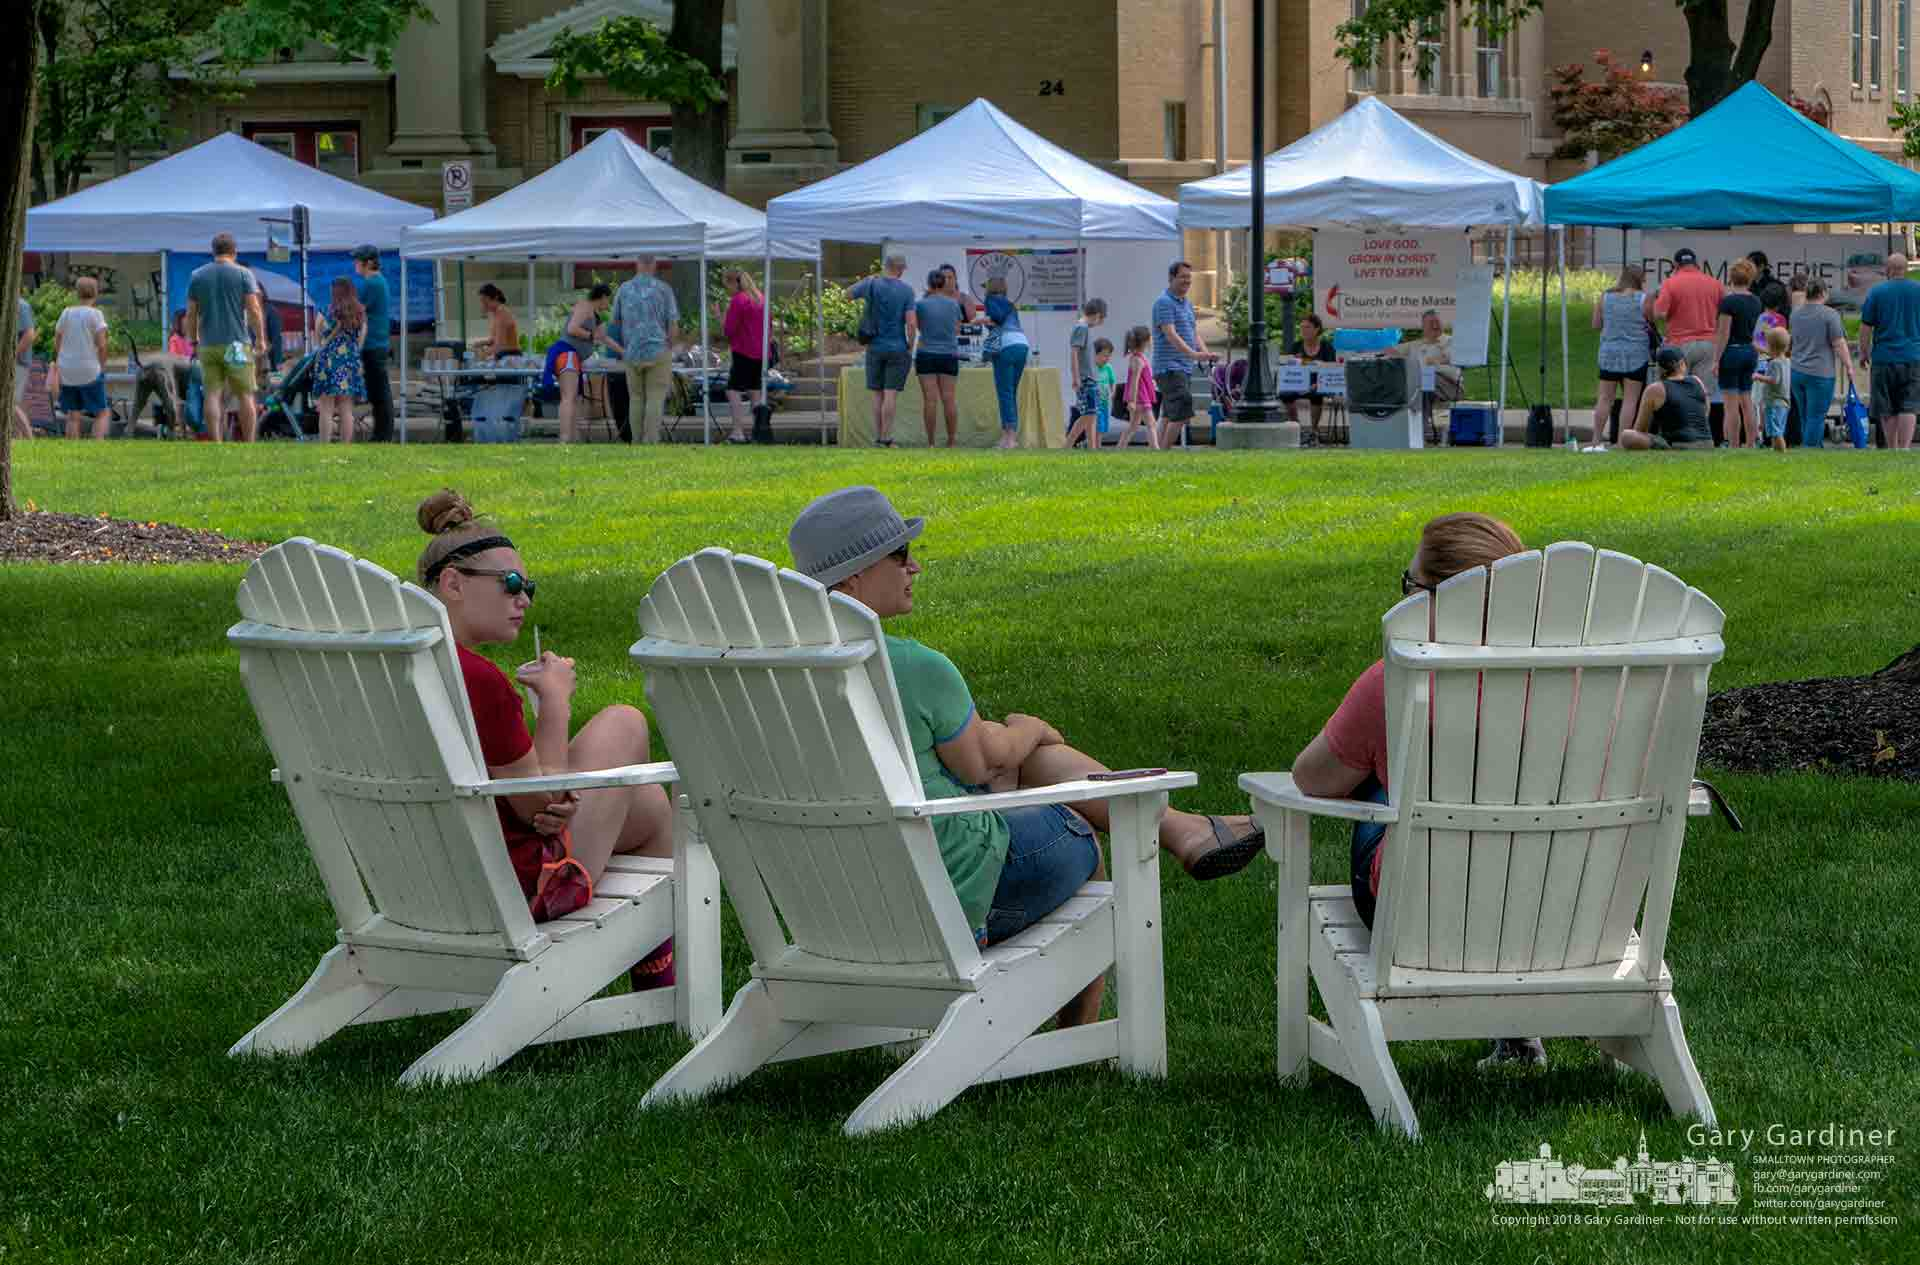 Shoppers at the Saturday Farmers Market settle into Adirondack chairs infront of Towers Hall after making selections from vendors at the market on Grove Street. My Final Photo for June 2, 2018.